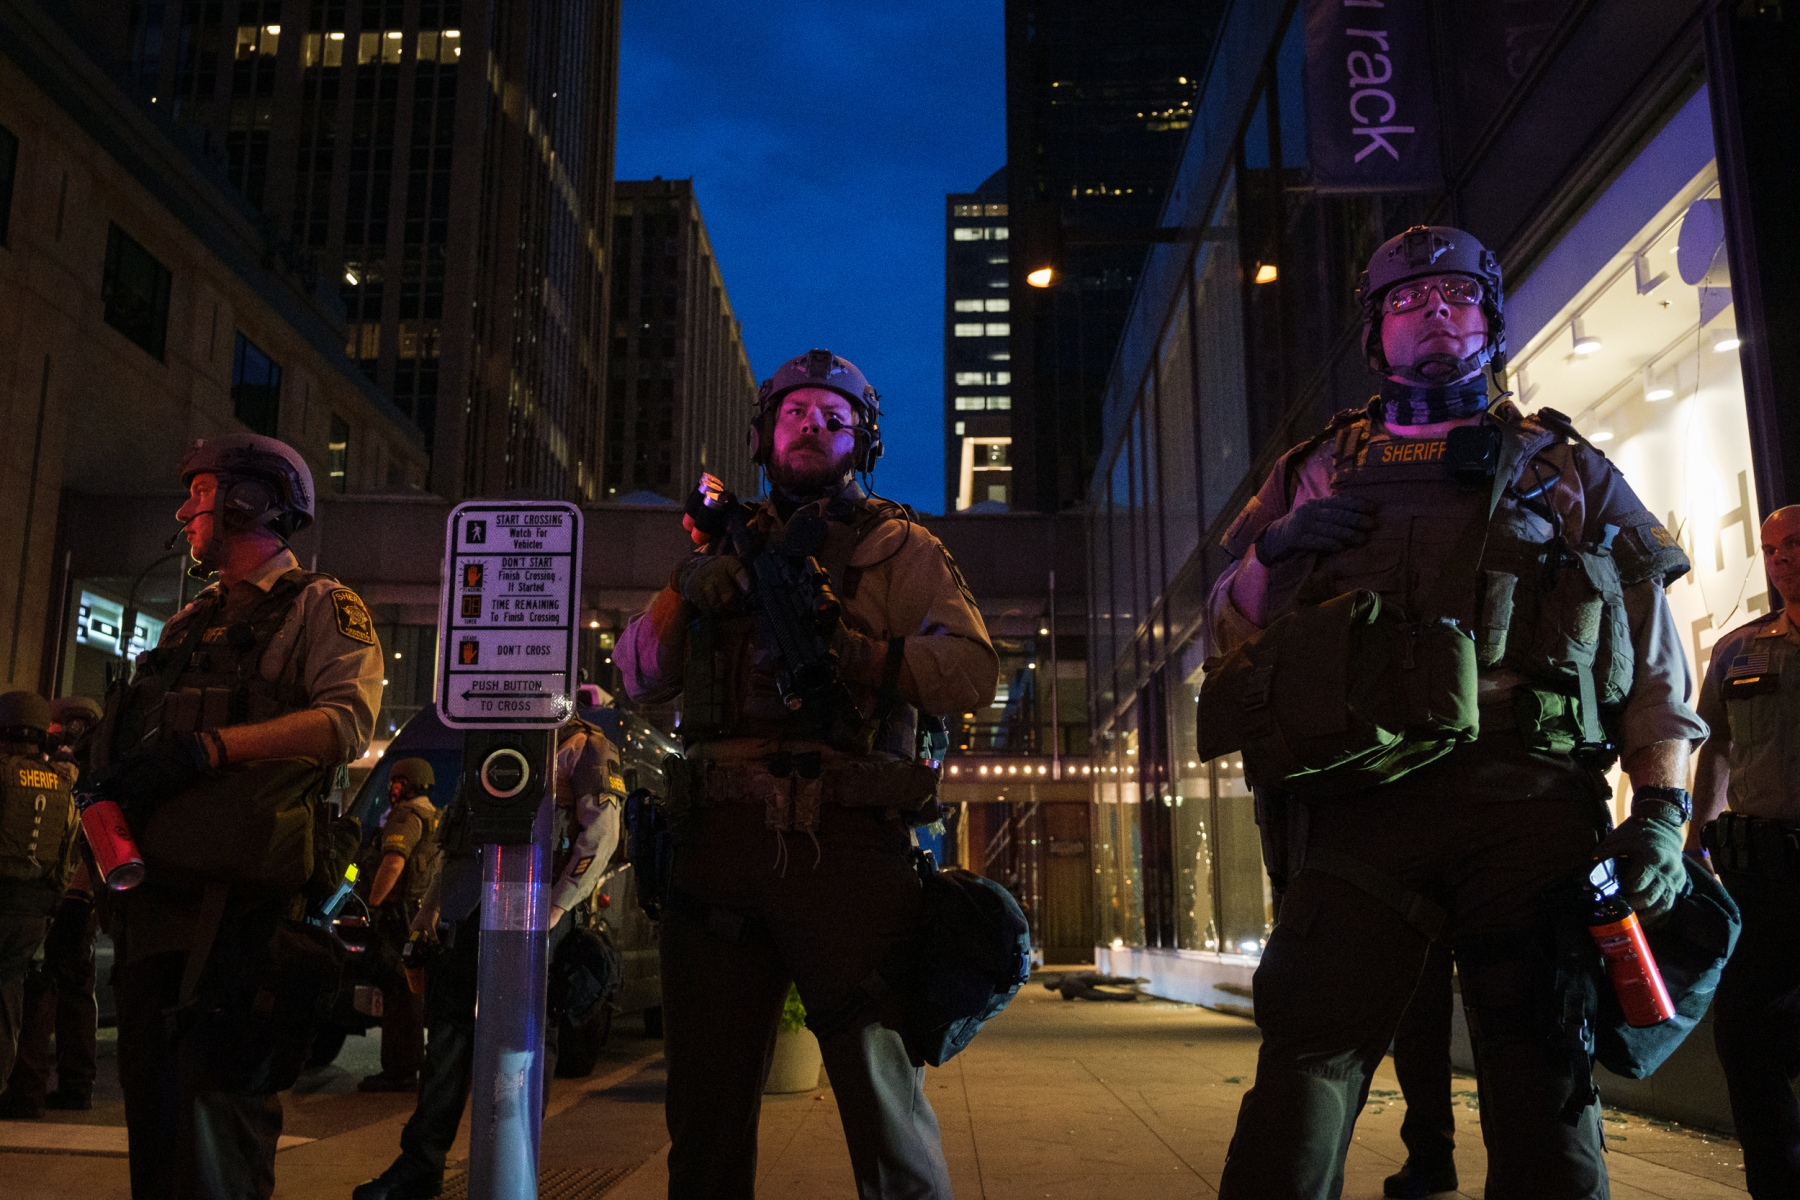 Sheriff's deputies stand on a street corner along Nicollet Avenue on August 26, 2020. As looting continues in the Nicollet Mall area, Minneapolis Mayor Jacob Frey issues a citywide curfew and Minnesota Governor Walz deploys the National Guard.